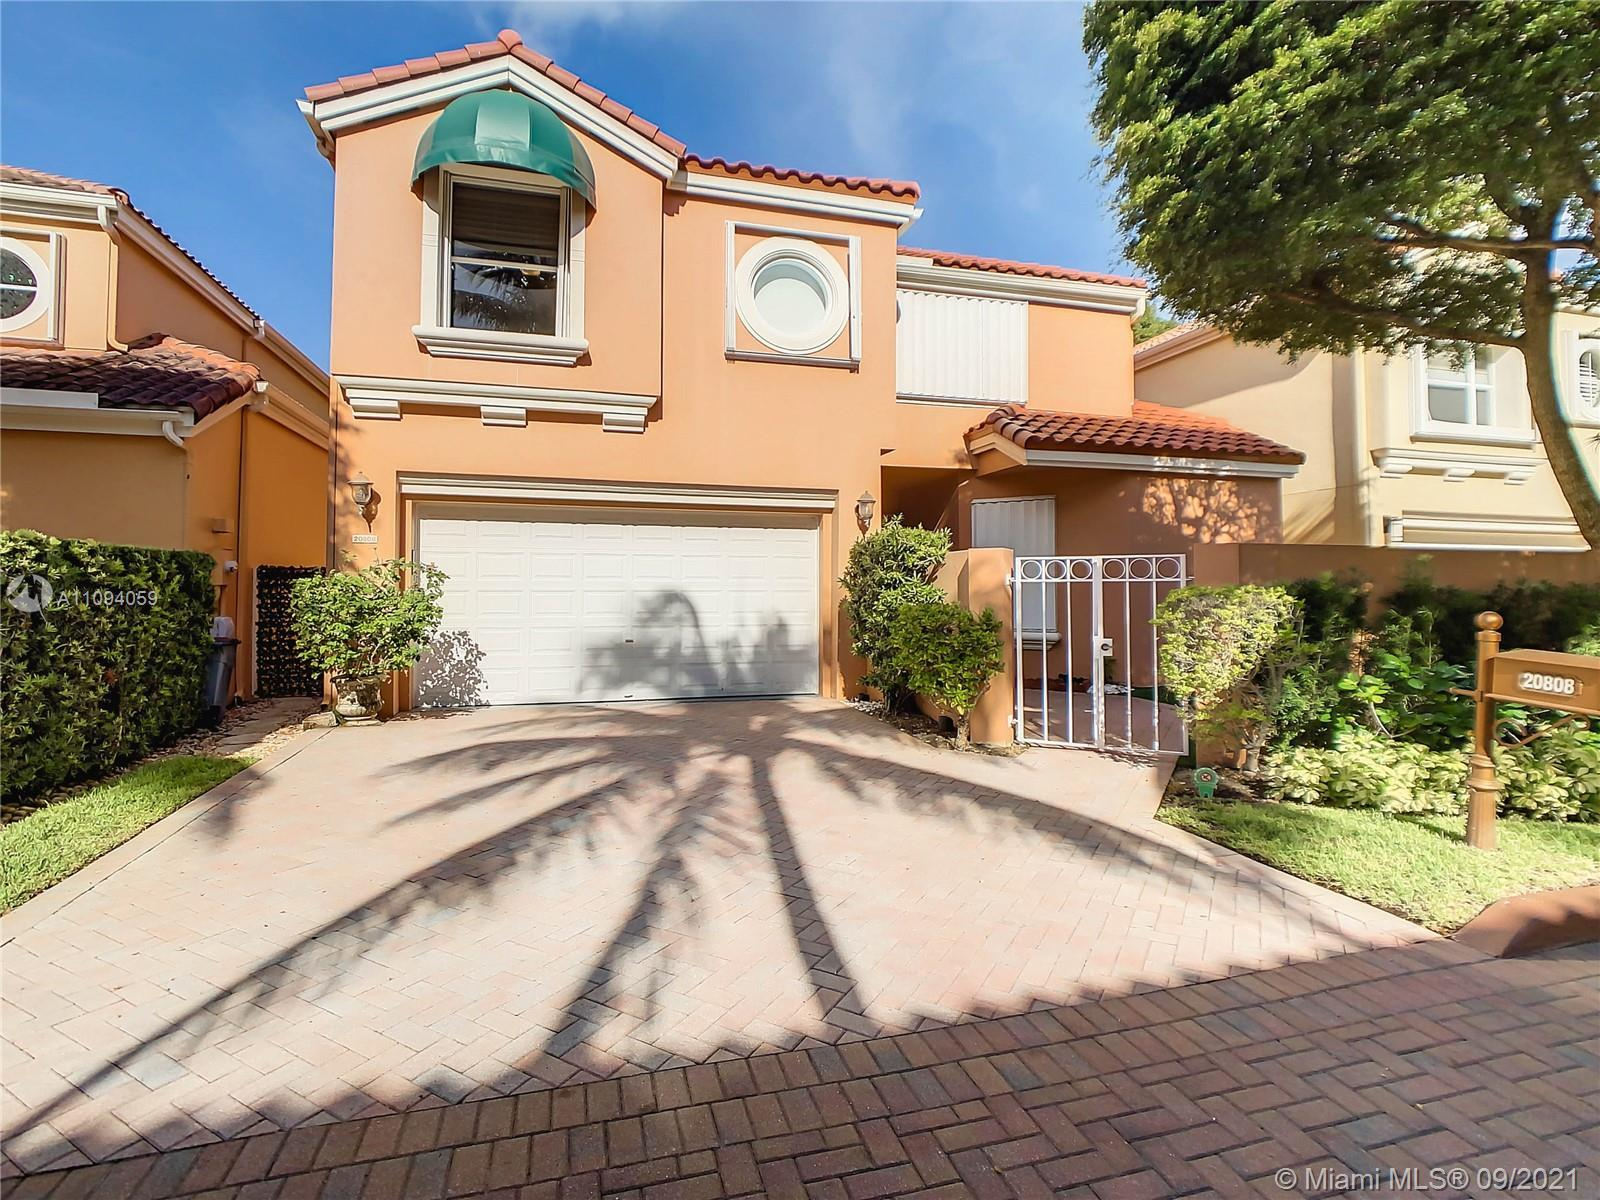 In the heart of Aventura, great opportunity to own this exquisite 2 story single family home in the